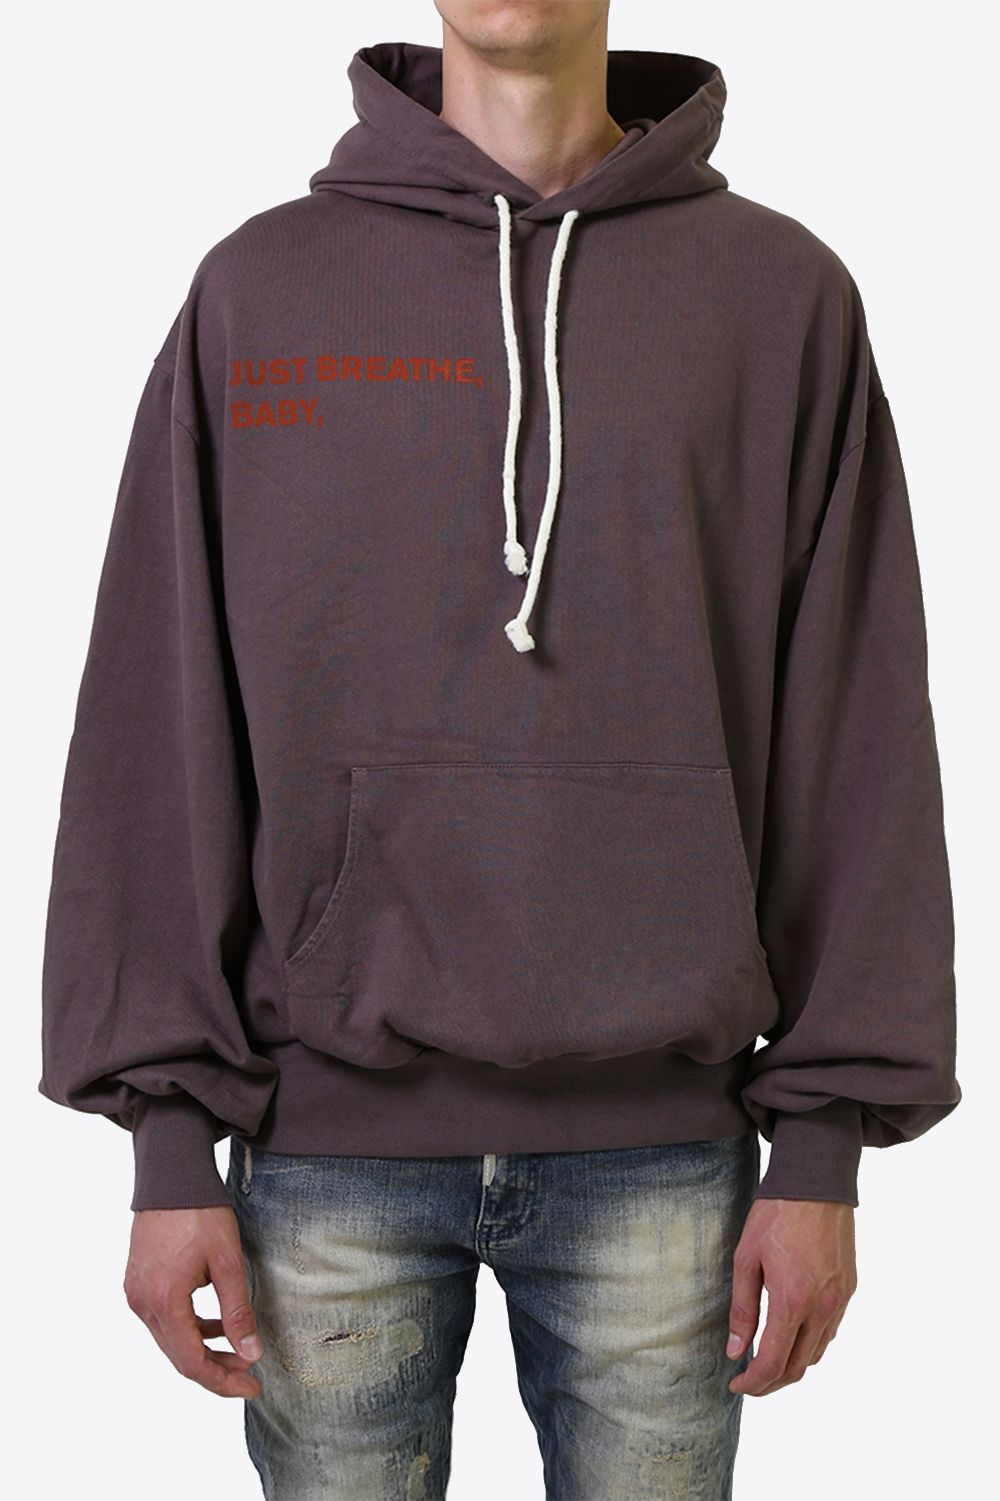 Breathe Hoody 1287